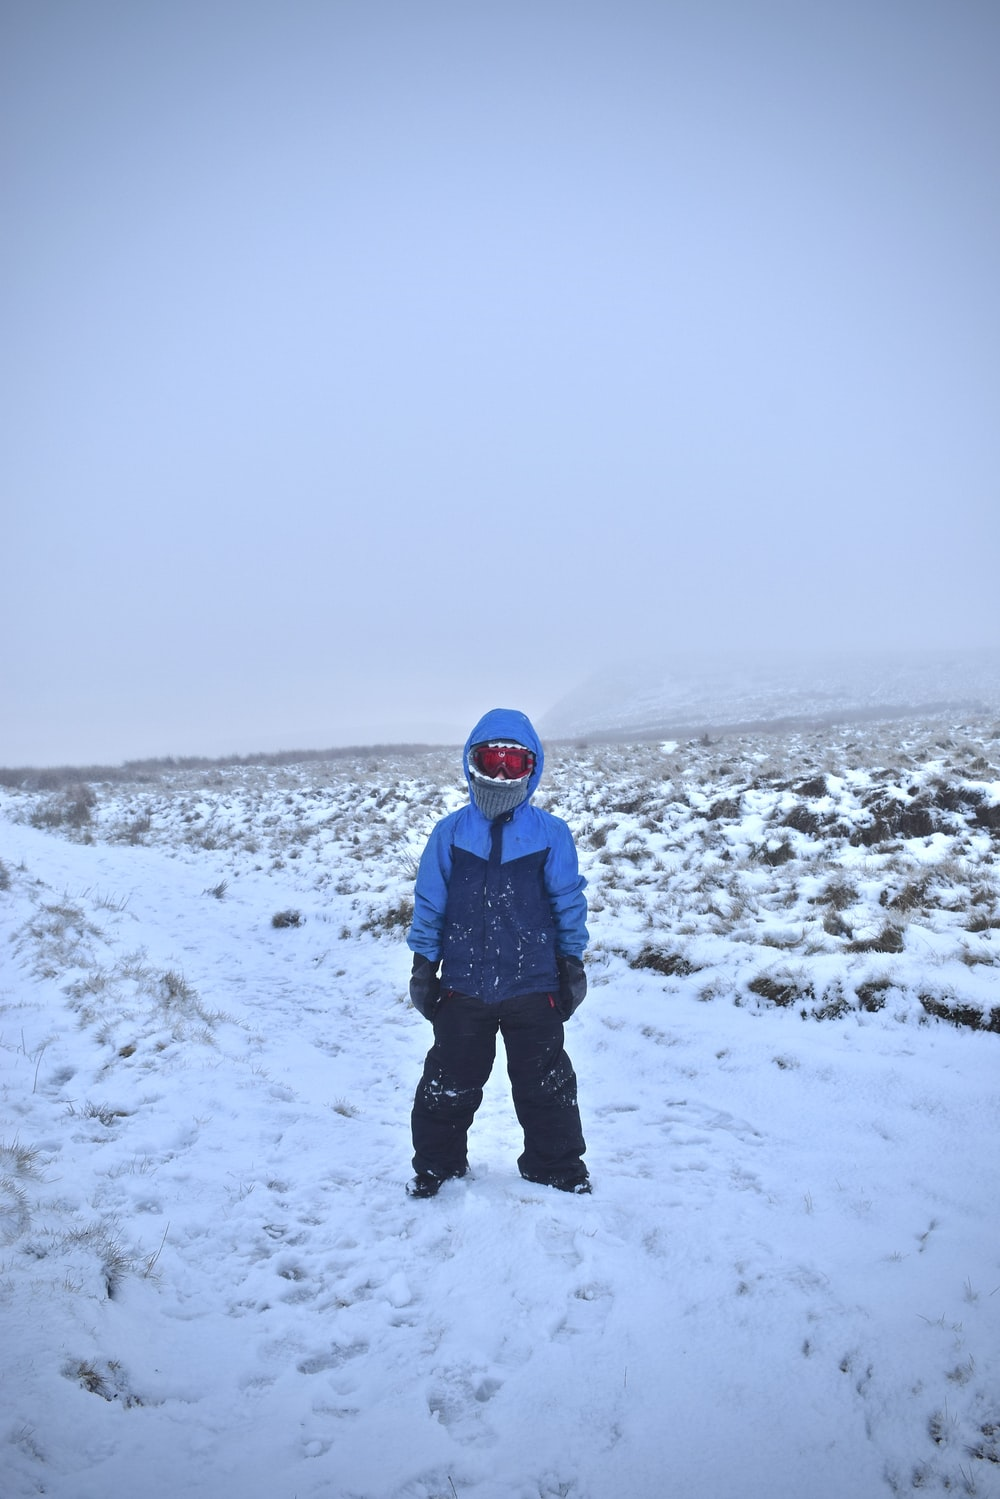 person in blue jacket and black pants standing on snow covered ground during daytime